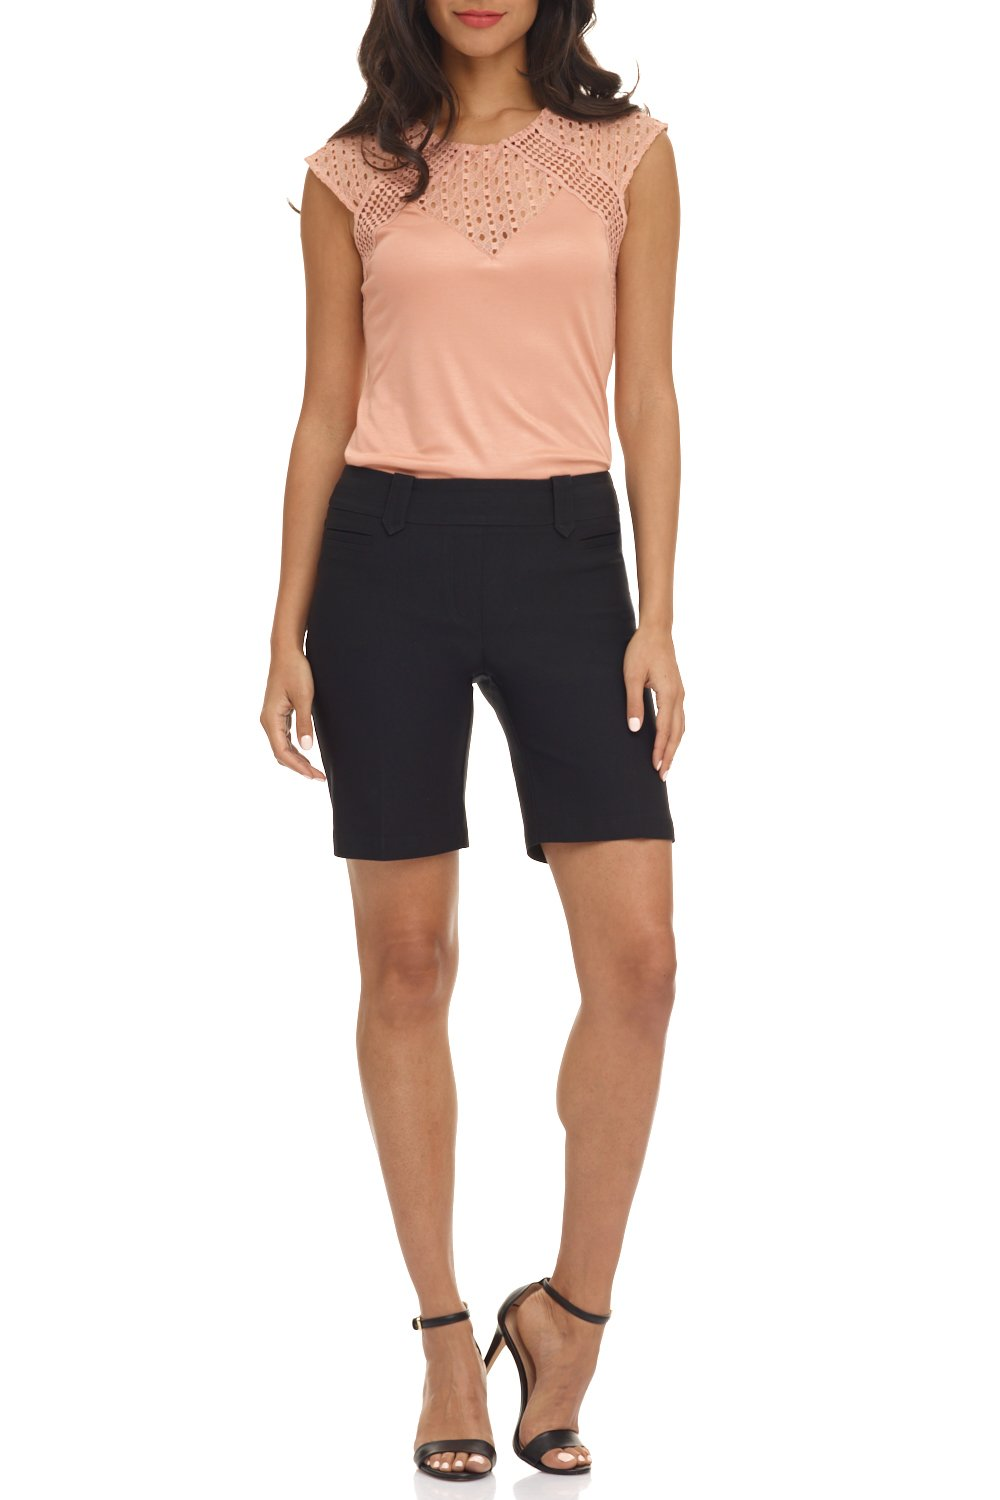 Rekucci Women's Ease in to Comfort Fit Perfection Modern Office Short (6,Black)